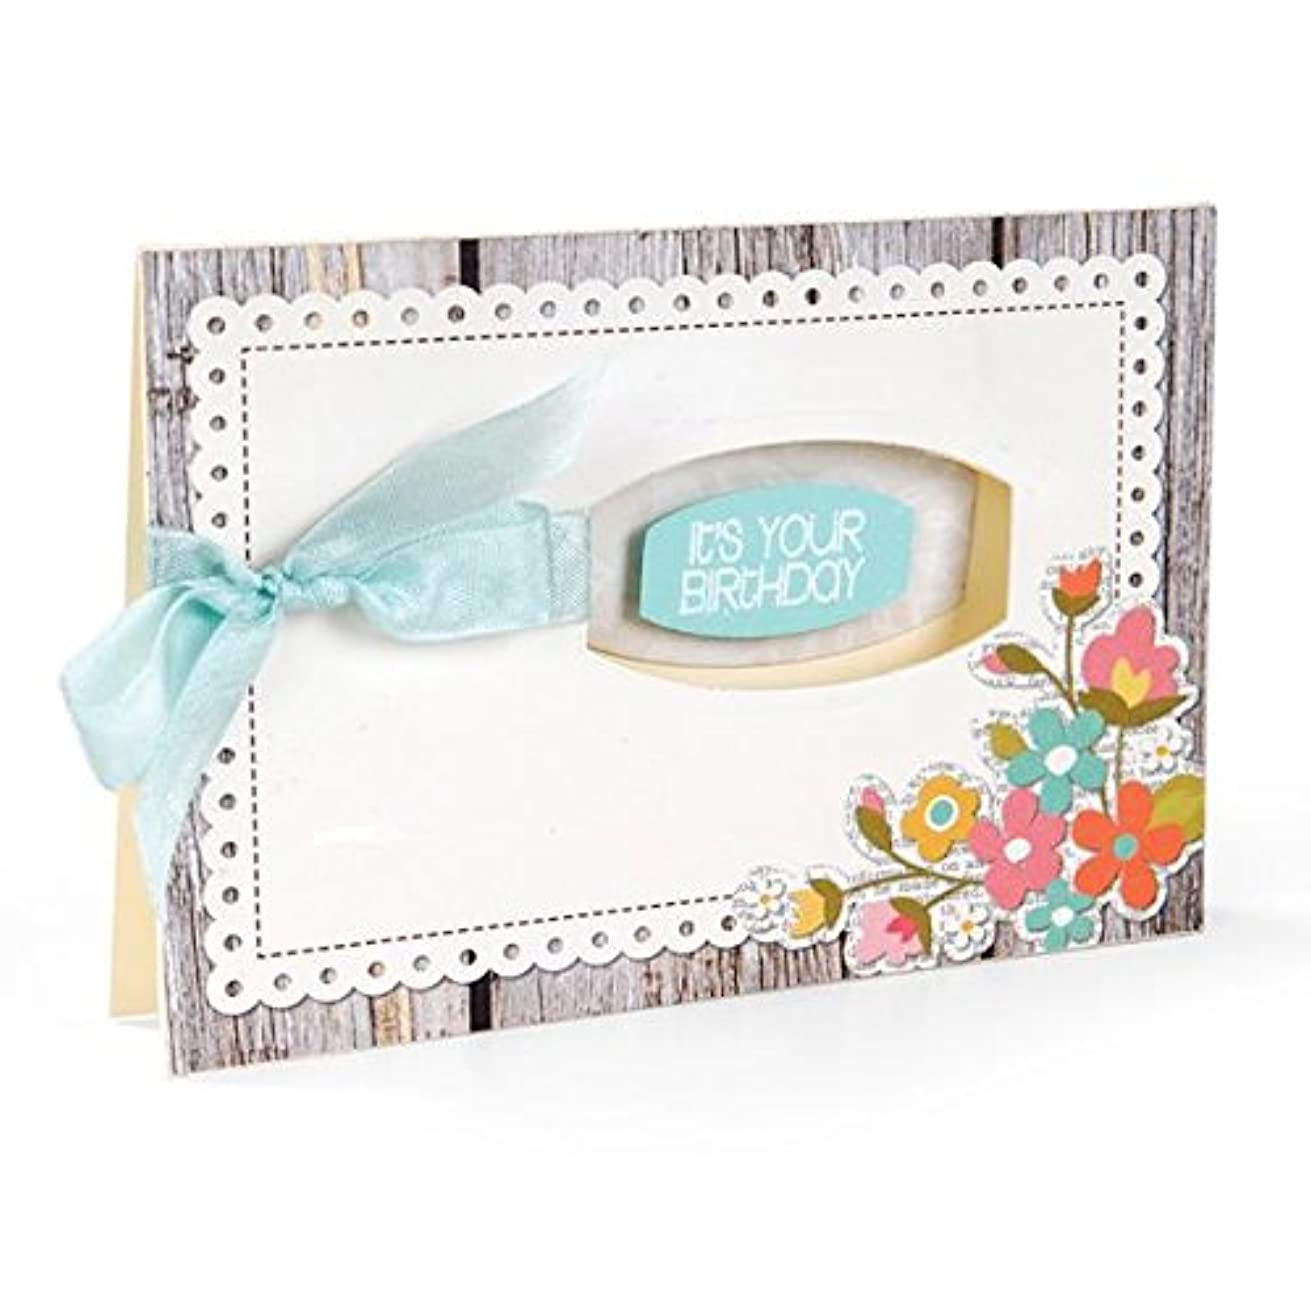 Sizzix Framelits Dies with Clear Stamps, Phrases, 12/Pack